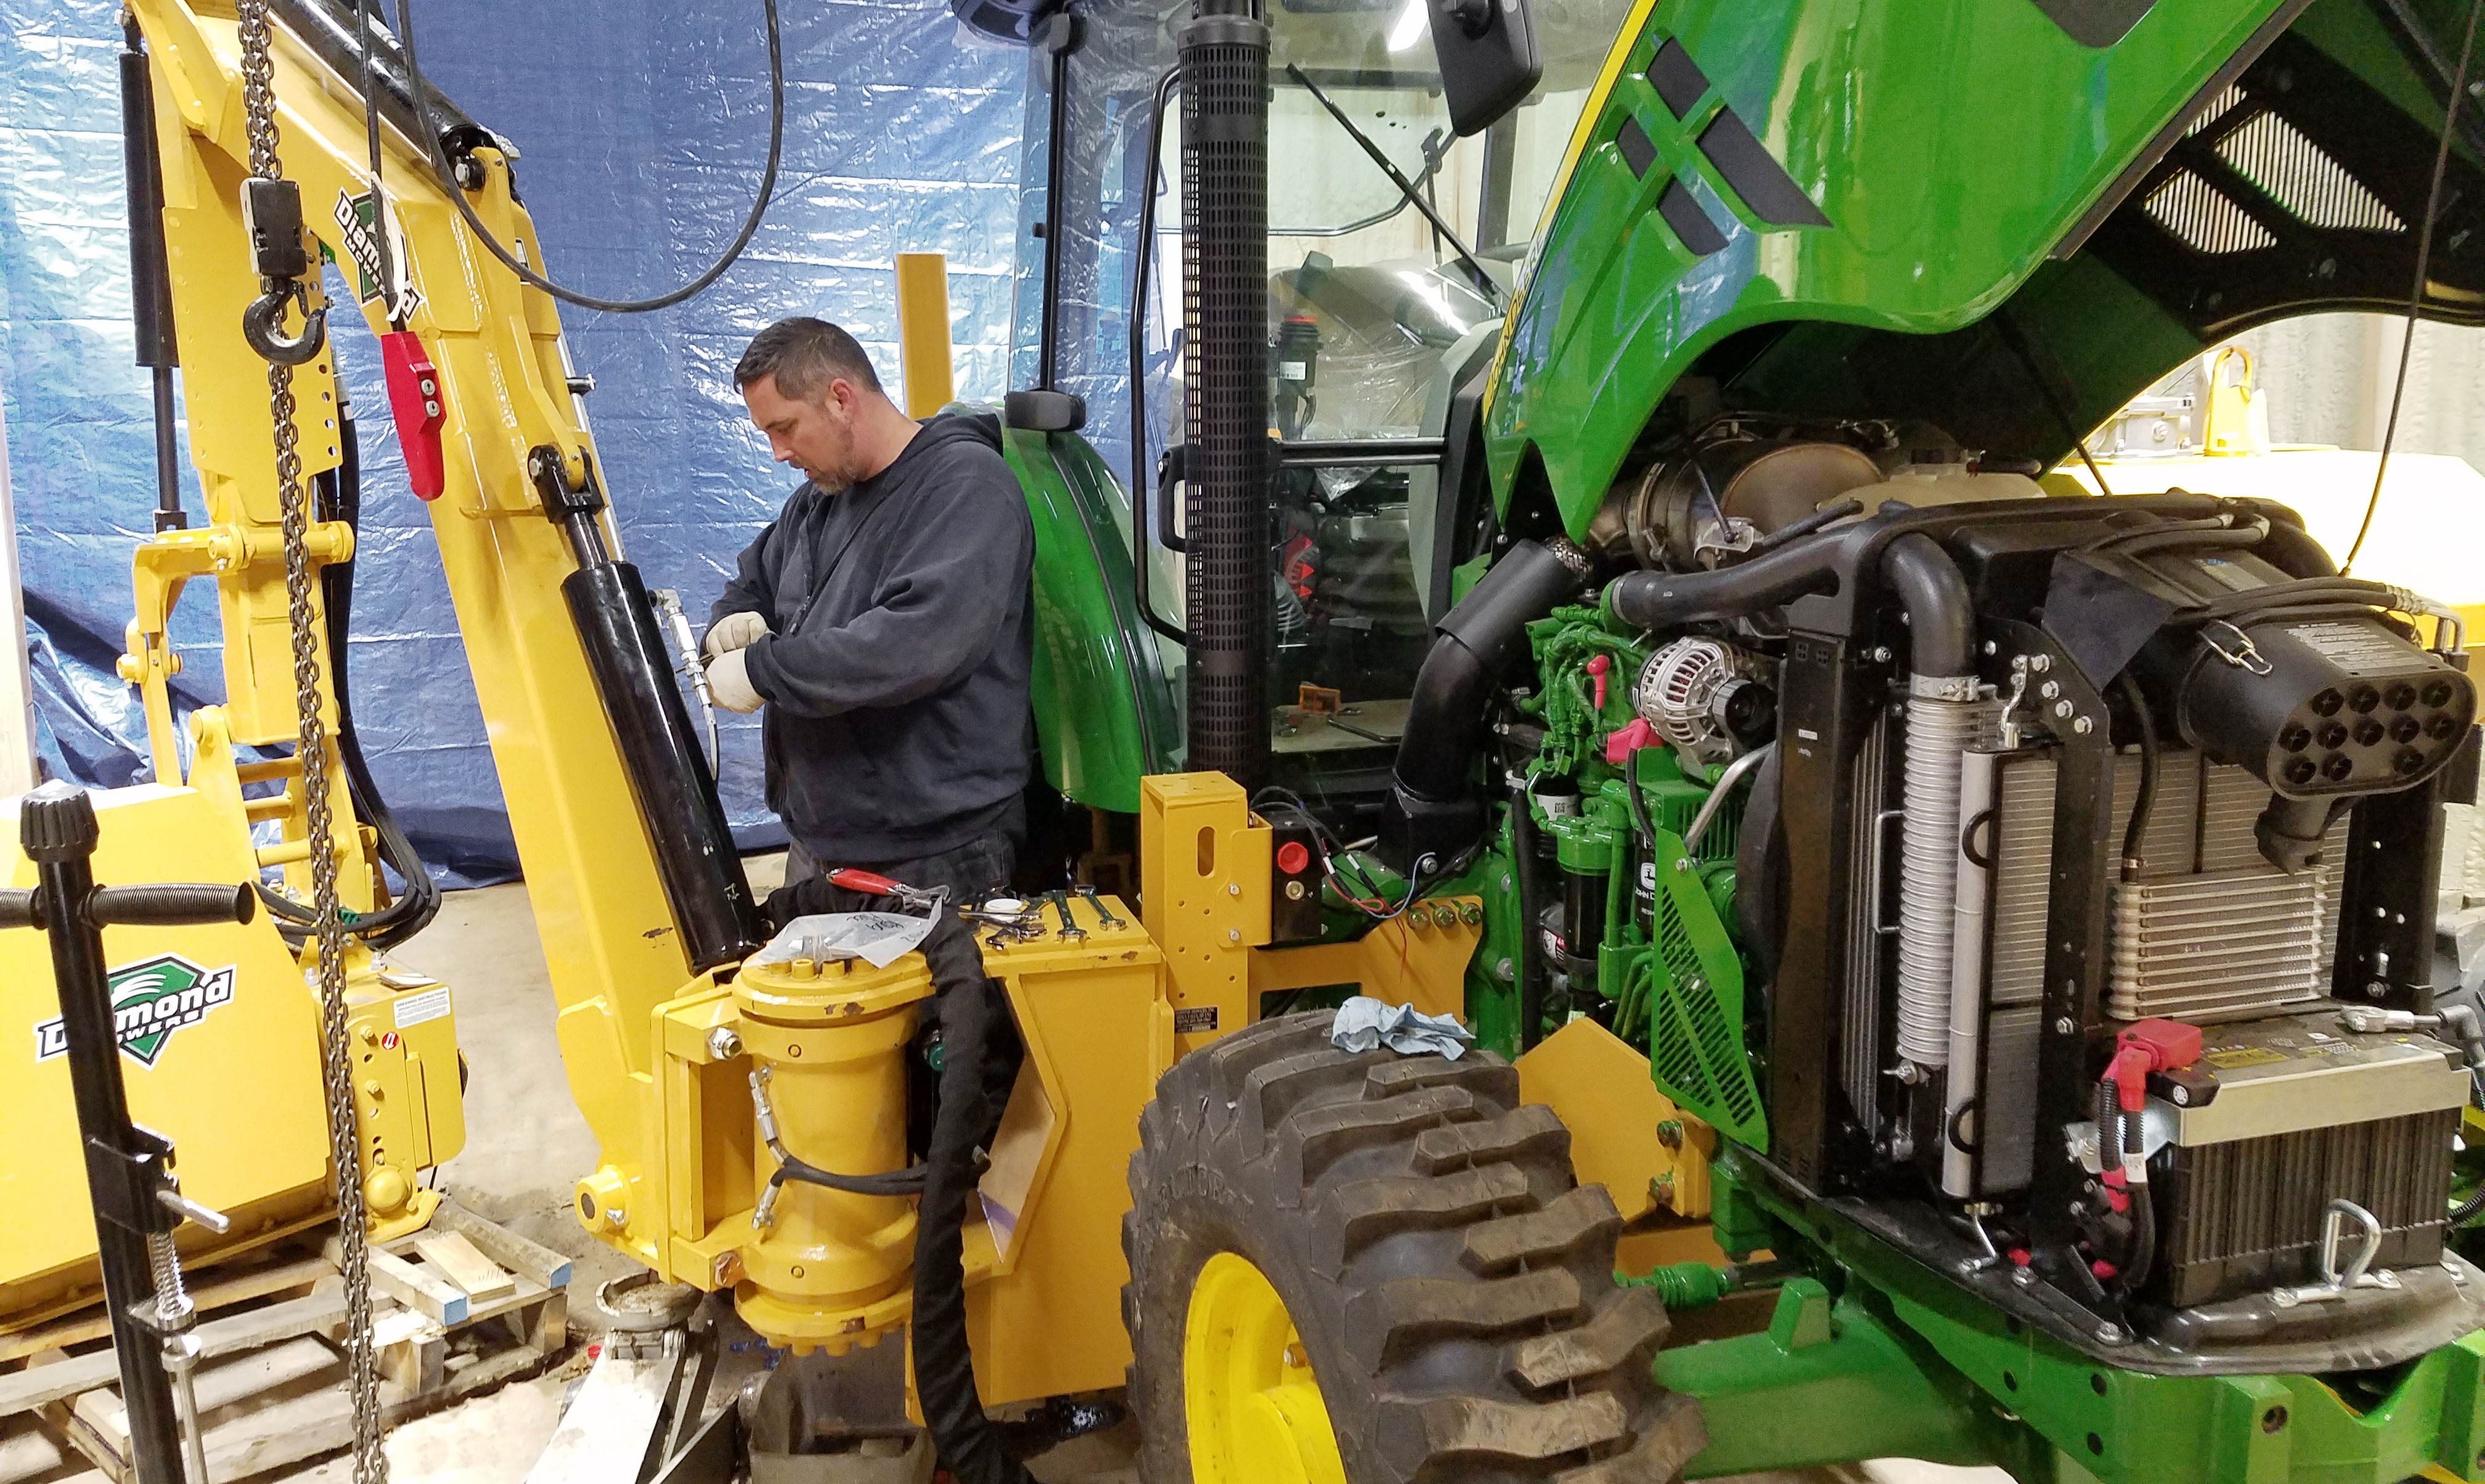 Tractor in Shop